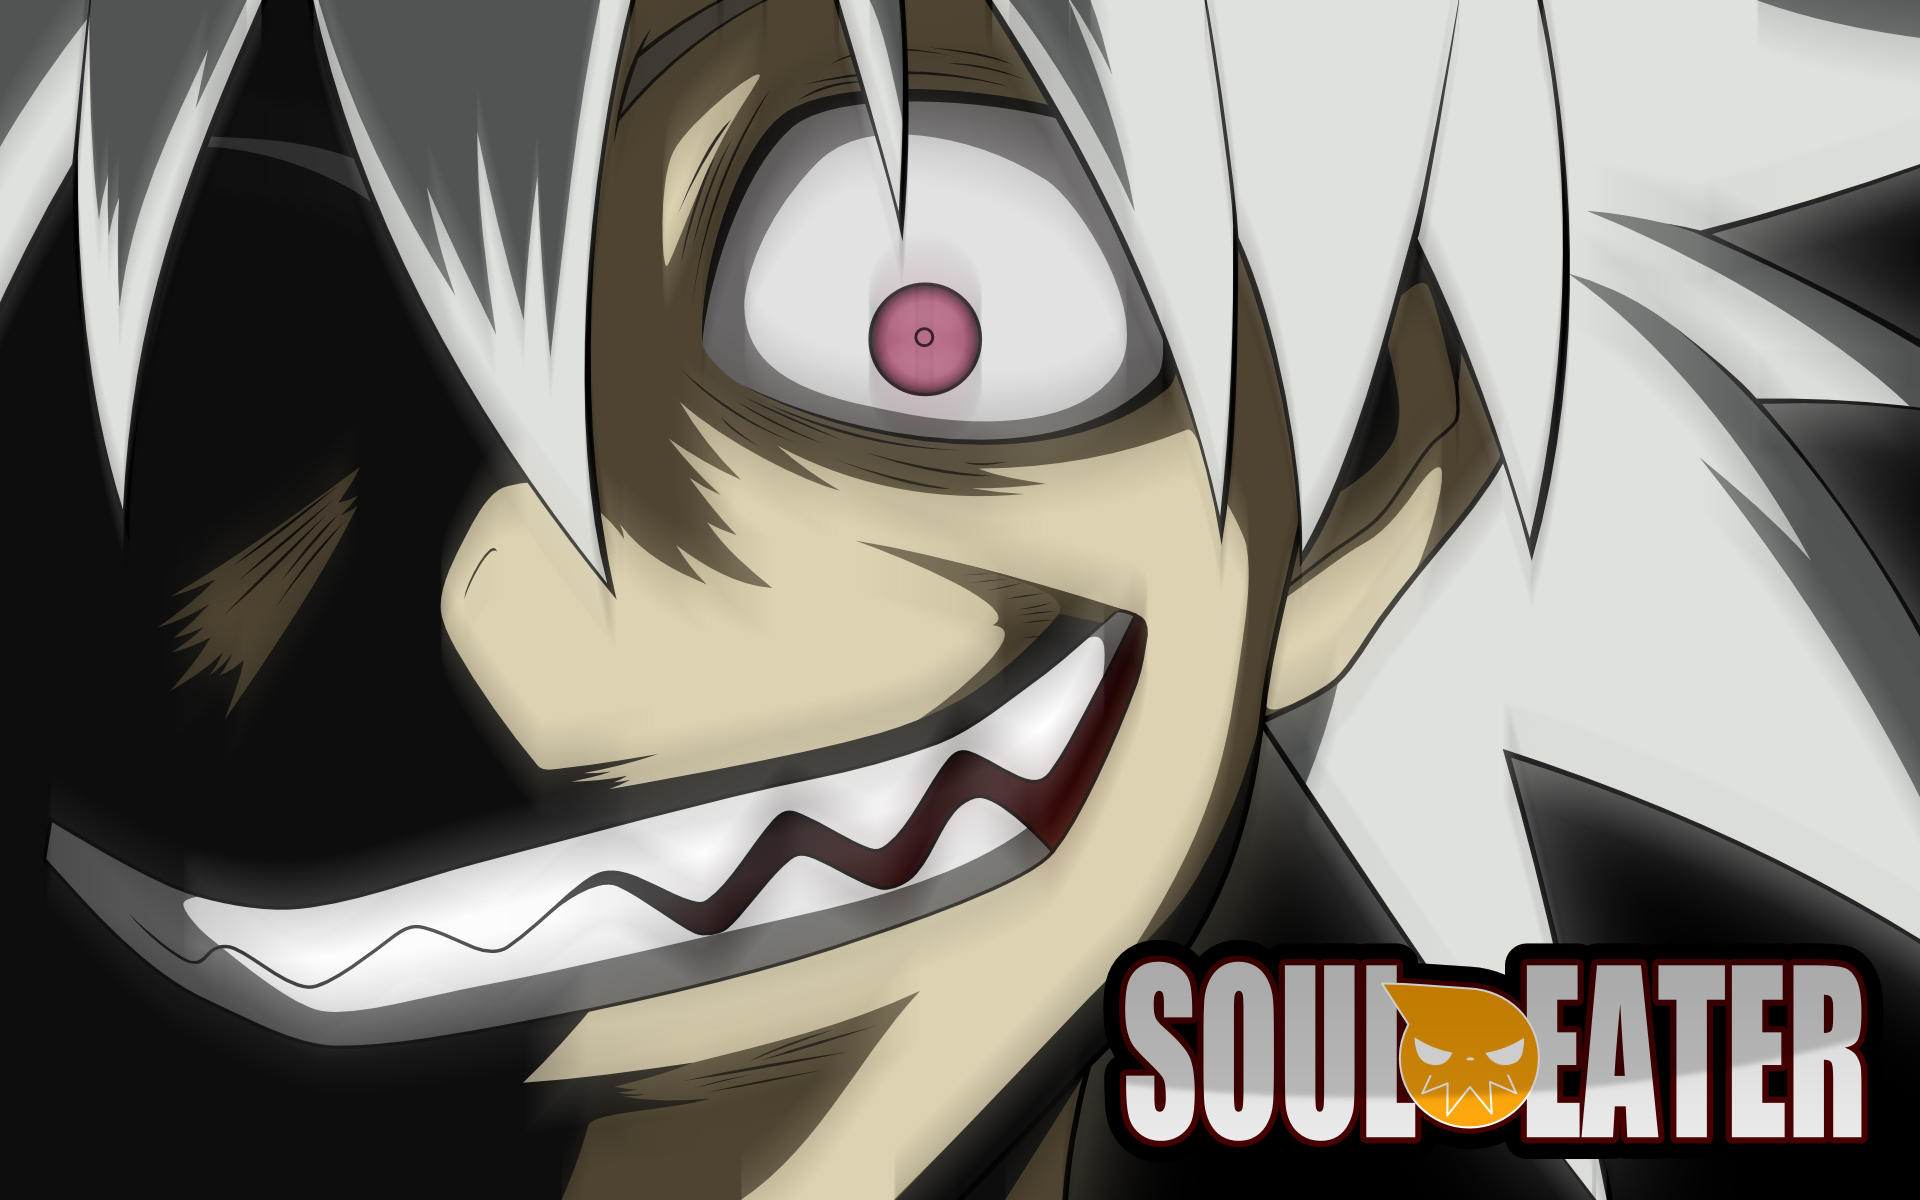 Soul eater wallpapers hd wallpaper cave soul eaternot soul eater wallpapers hd wallpaper cave voltagebd Images